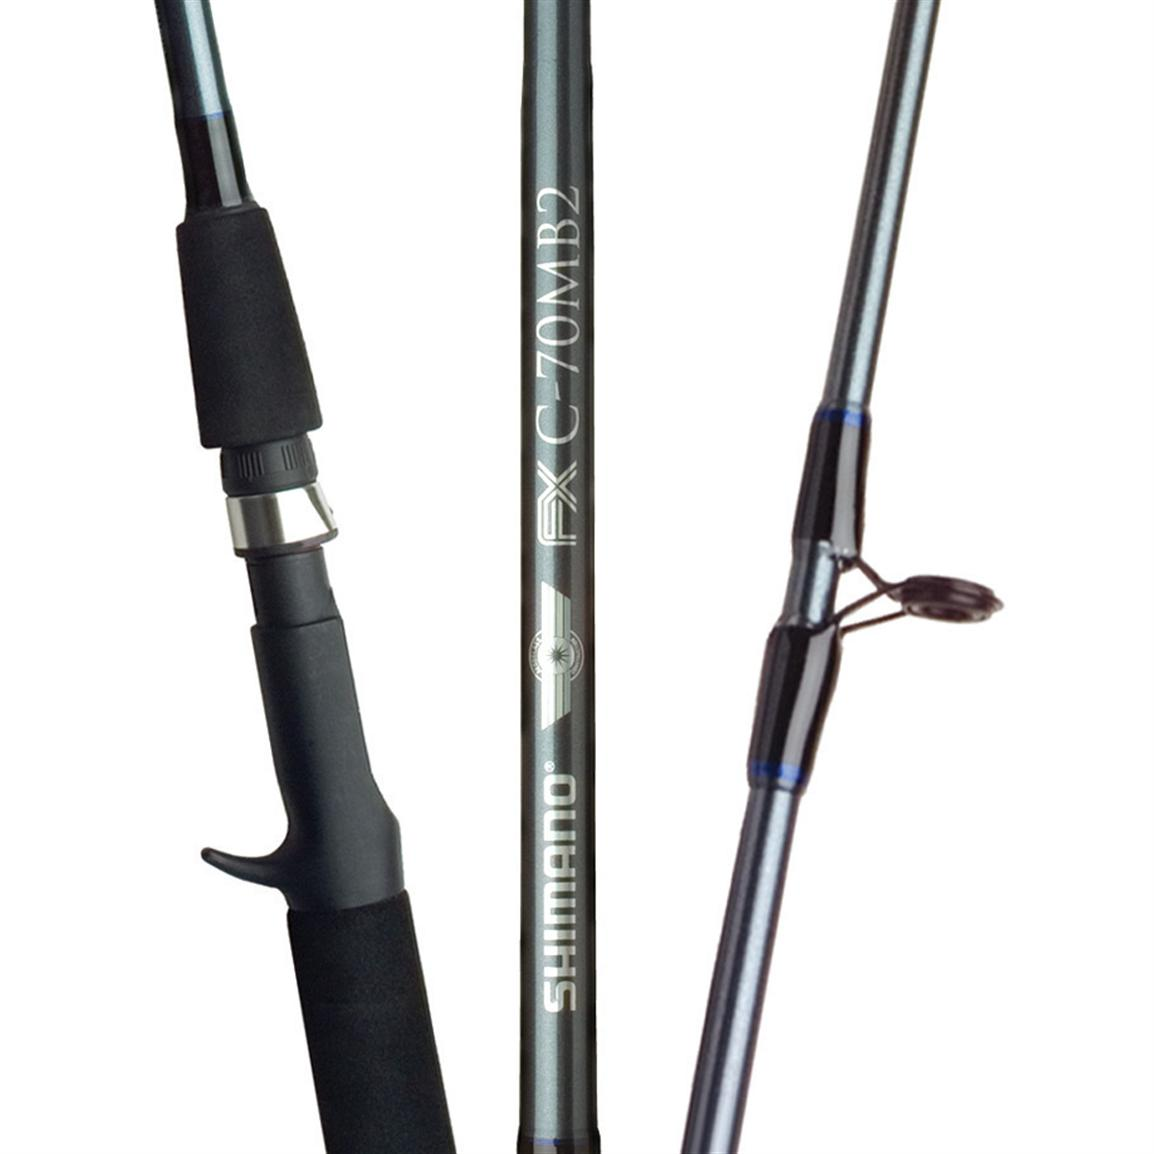 Shimano FXS 2 Piece Spinning Rod - Reviews of Top 10 Fishing Gears - Go Fishing!